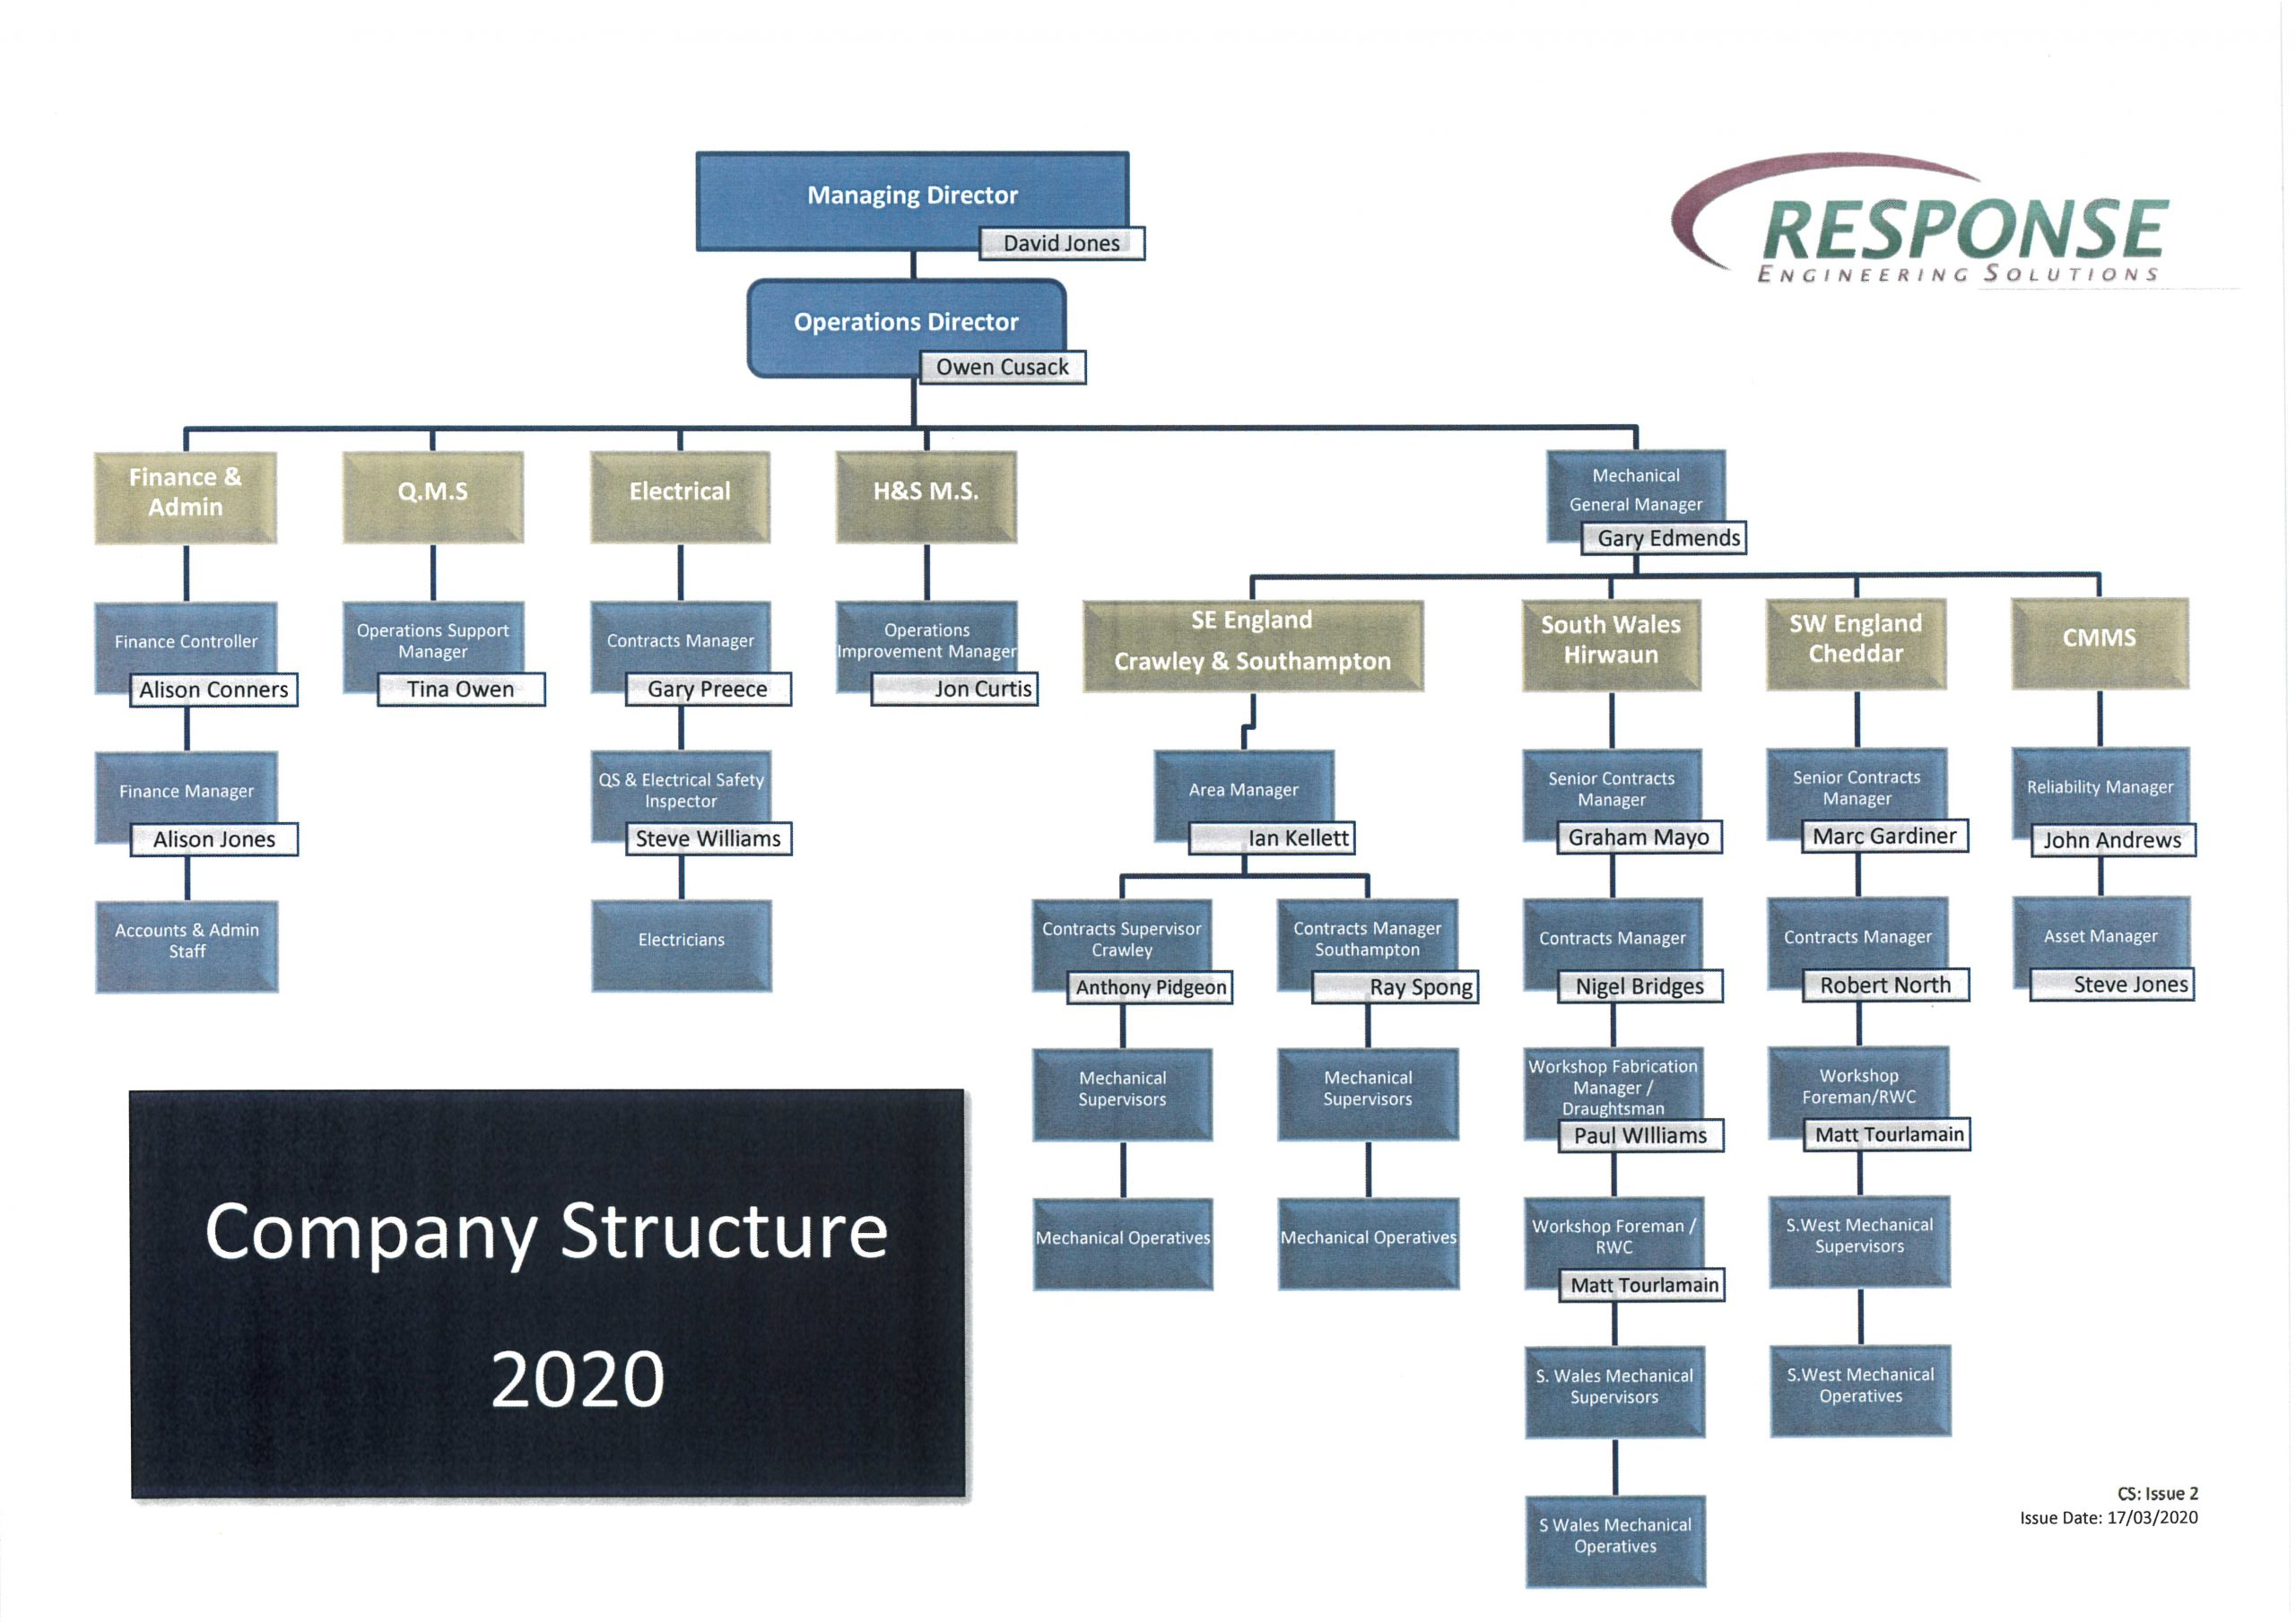 Company Structure 2020